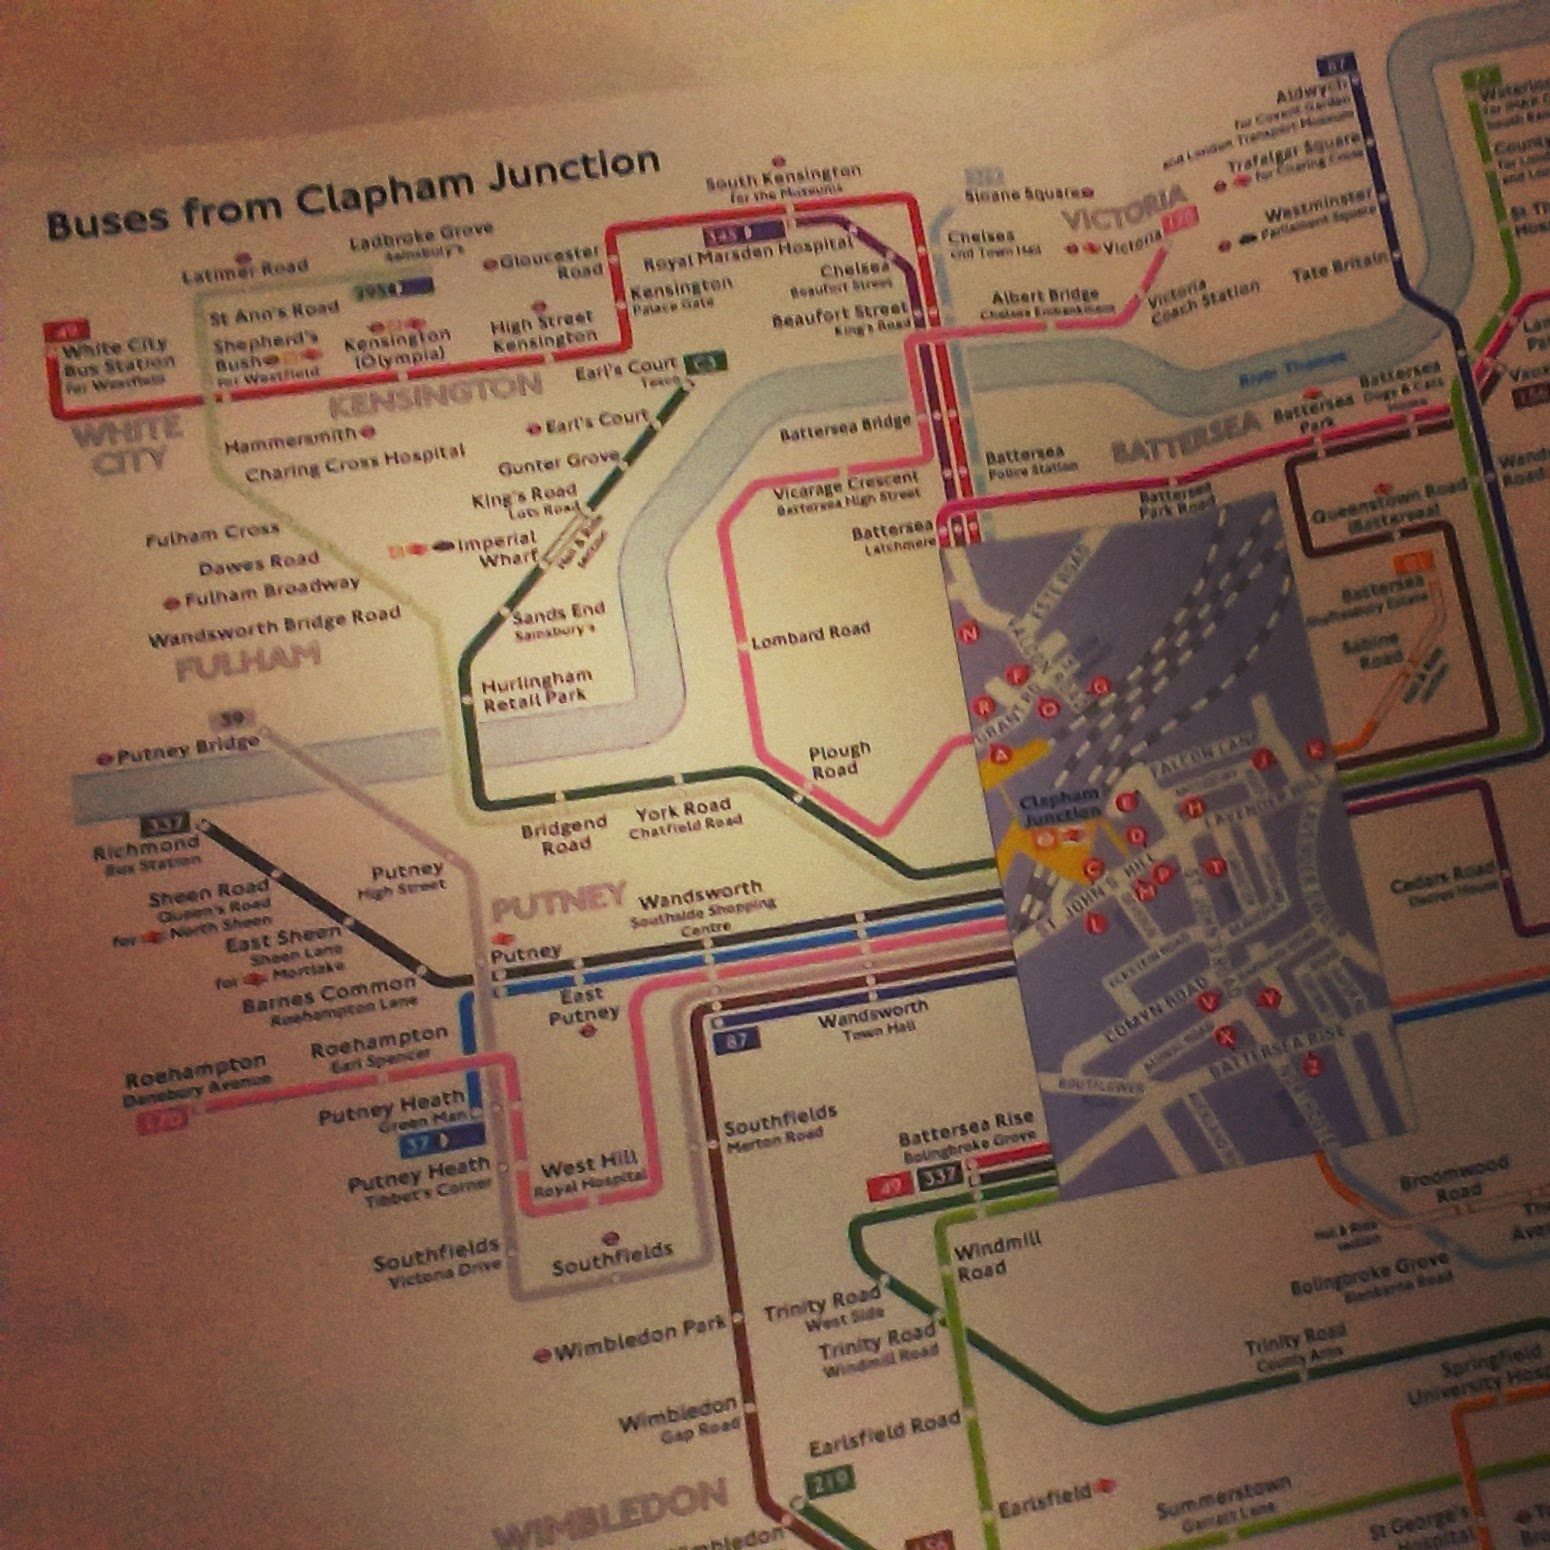 9pm - planning the next day's bus routes